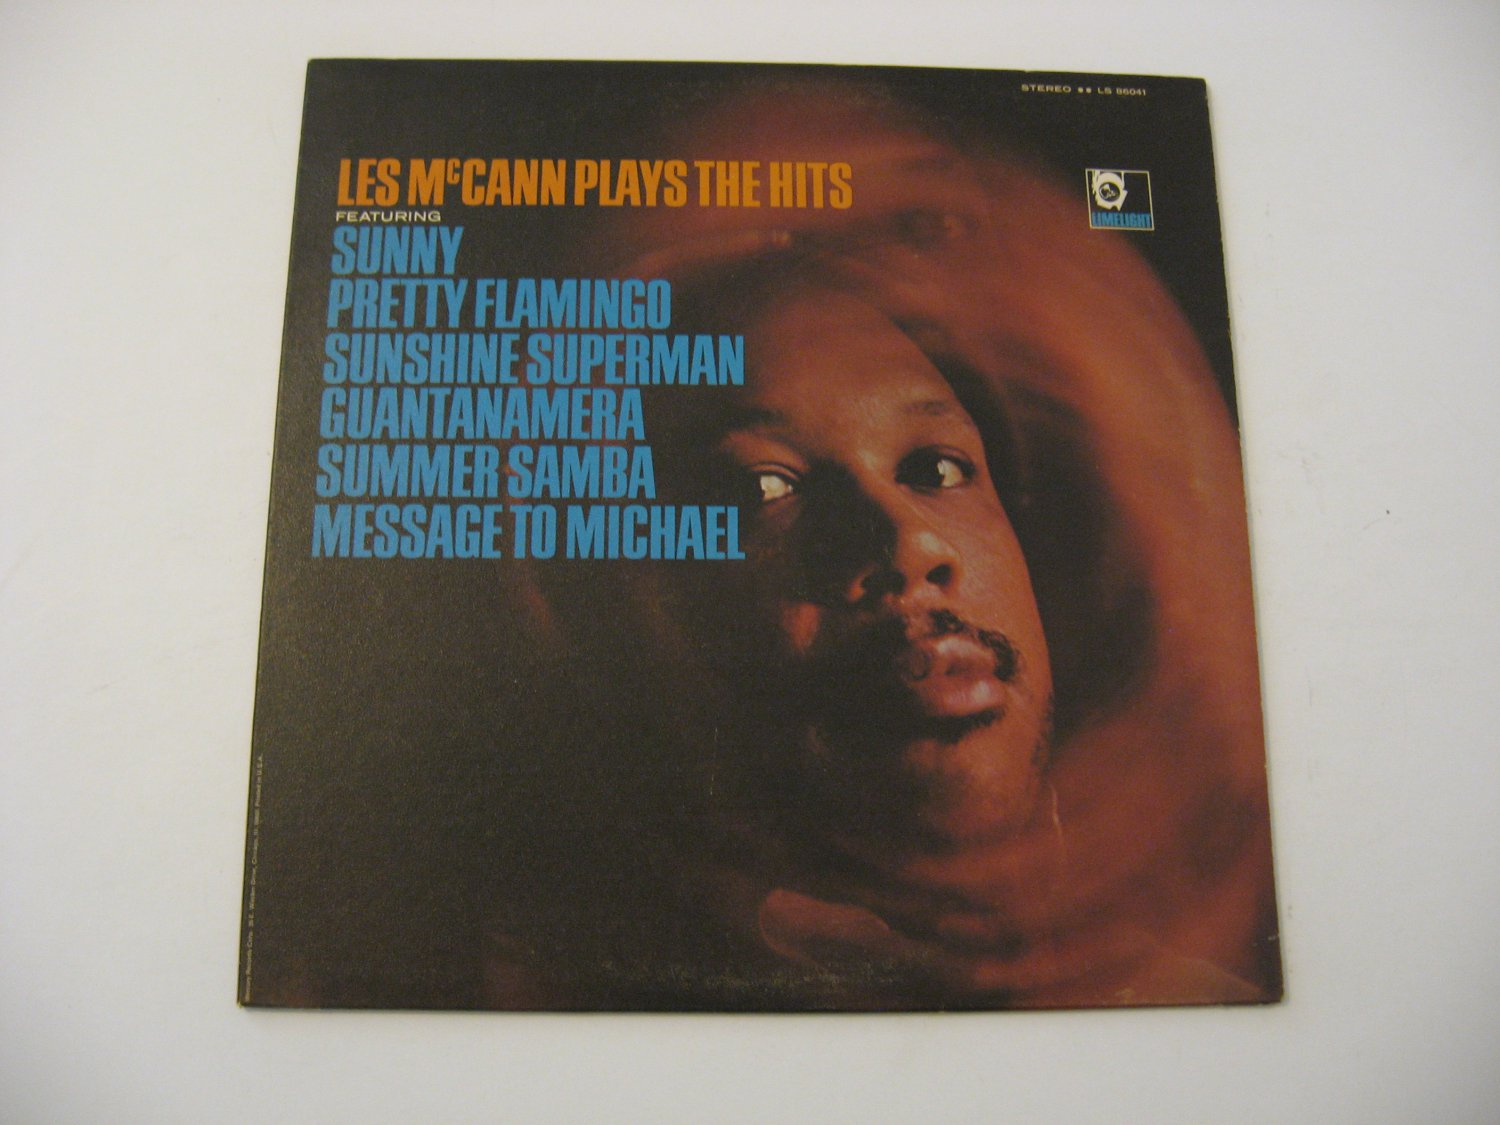 Les McCann - Les McCann Plays The Hits - Circa 1966